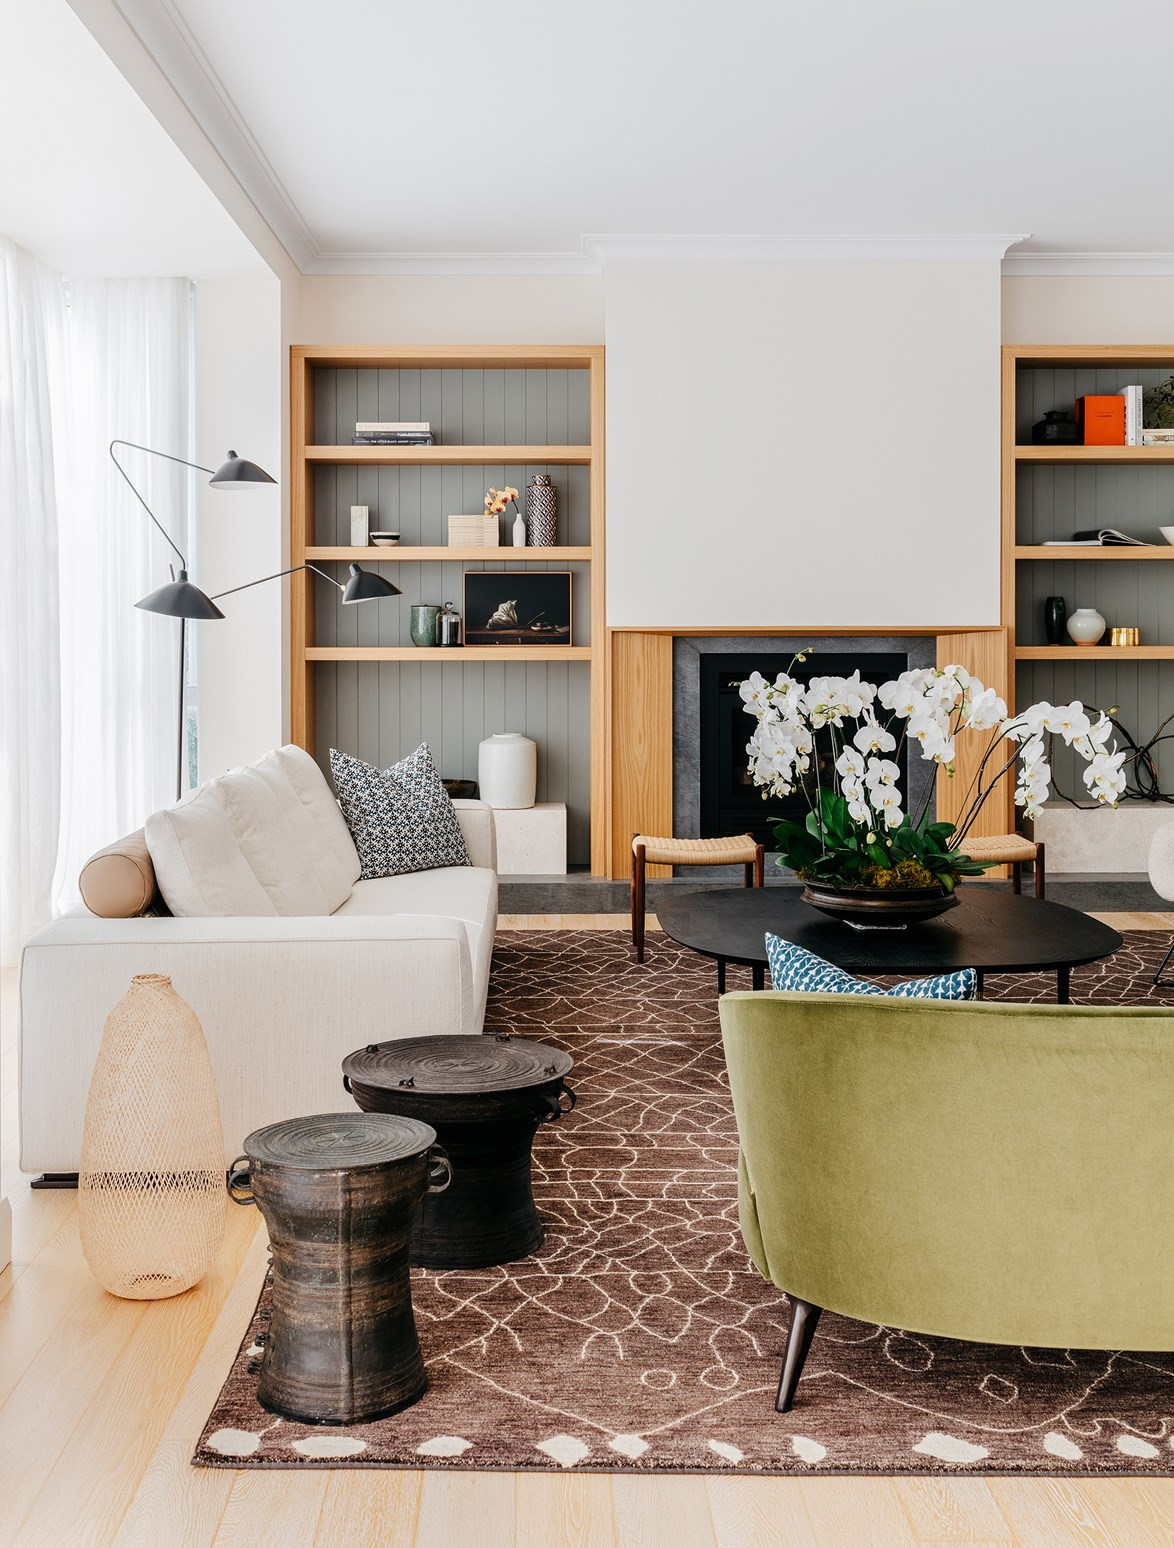 """<p>**AS A SHELVING ACCENT**<p> <p>Not prepared to panel an entire wall? Start with small steps, like panelling the back of a shelf to create an extra layer of interest to beautifully styled vignettes. Take style cues from this living room in a [contemporary home](https://www.homestolove.com.au/how-to-infuse-warmth-into-a-contemporary-home-4628